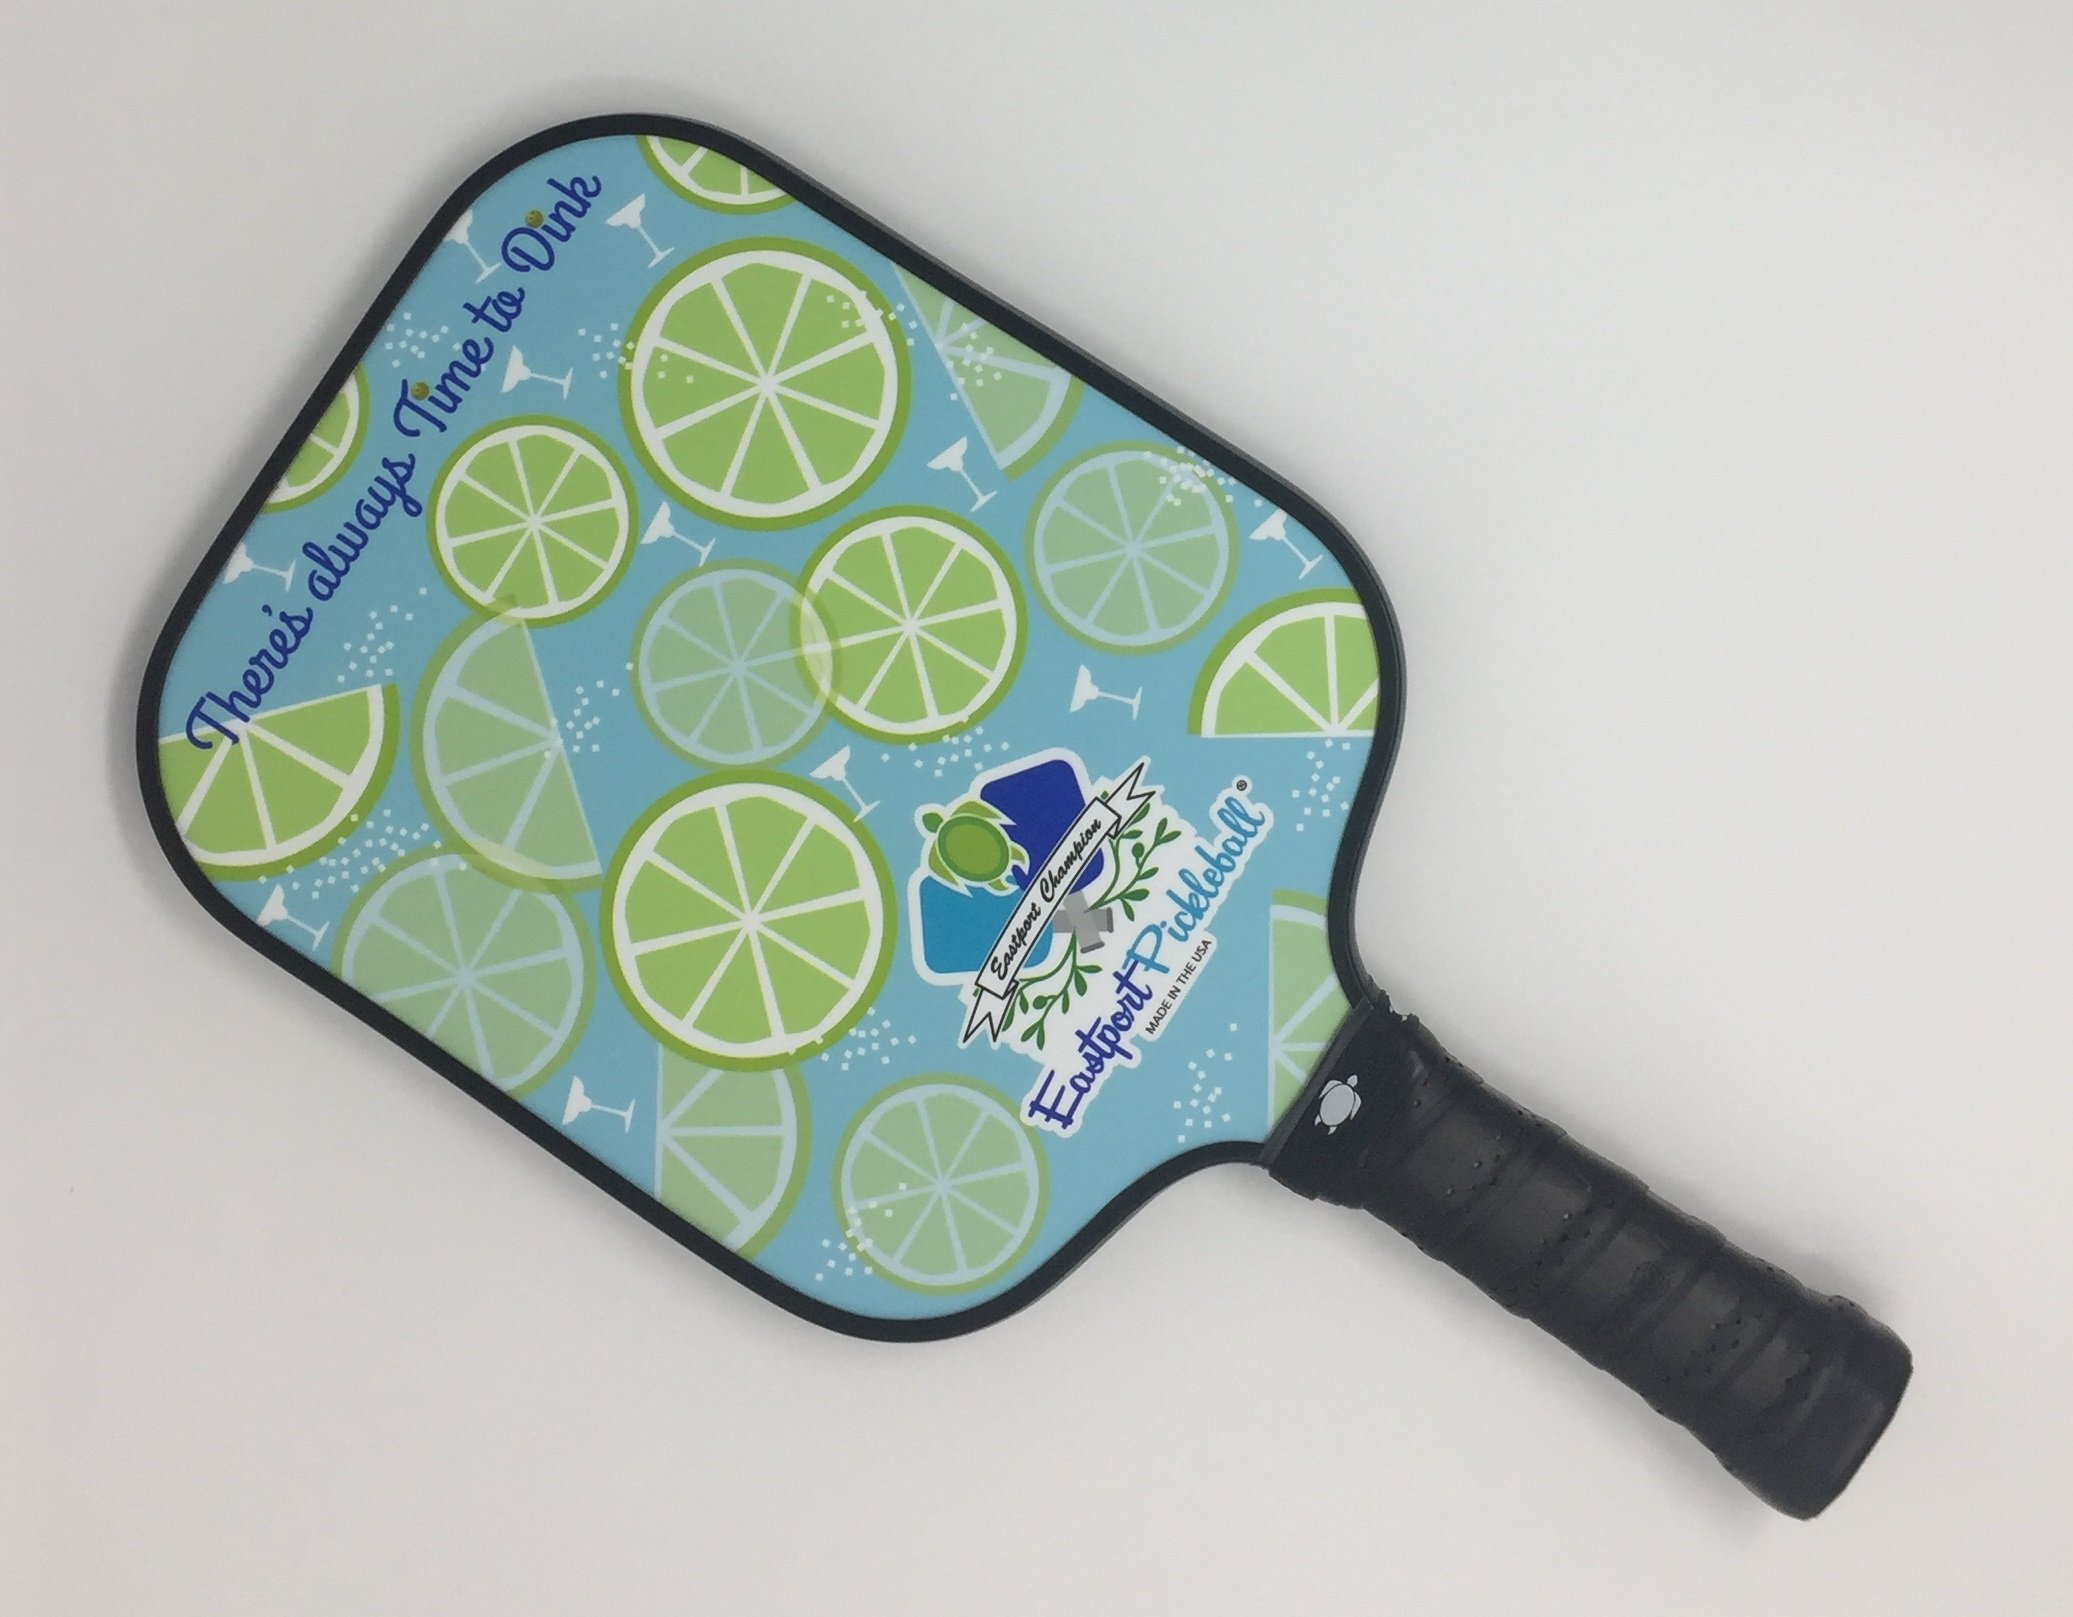 Eastport Pickleball Paddle, USAPA Approved, Margarita Dink - Pickleball's Poshest Paddle by Eastport Pickleball